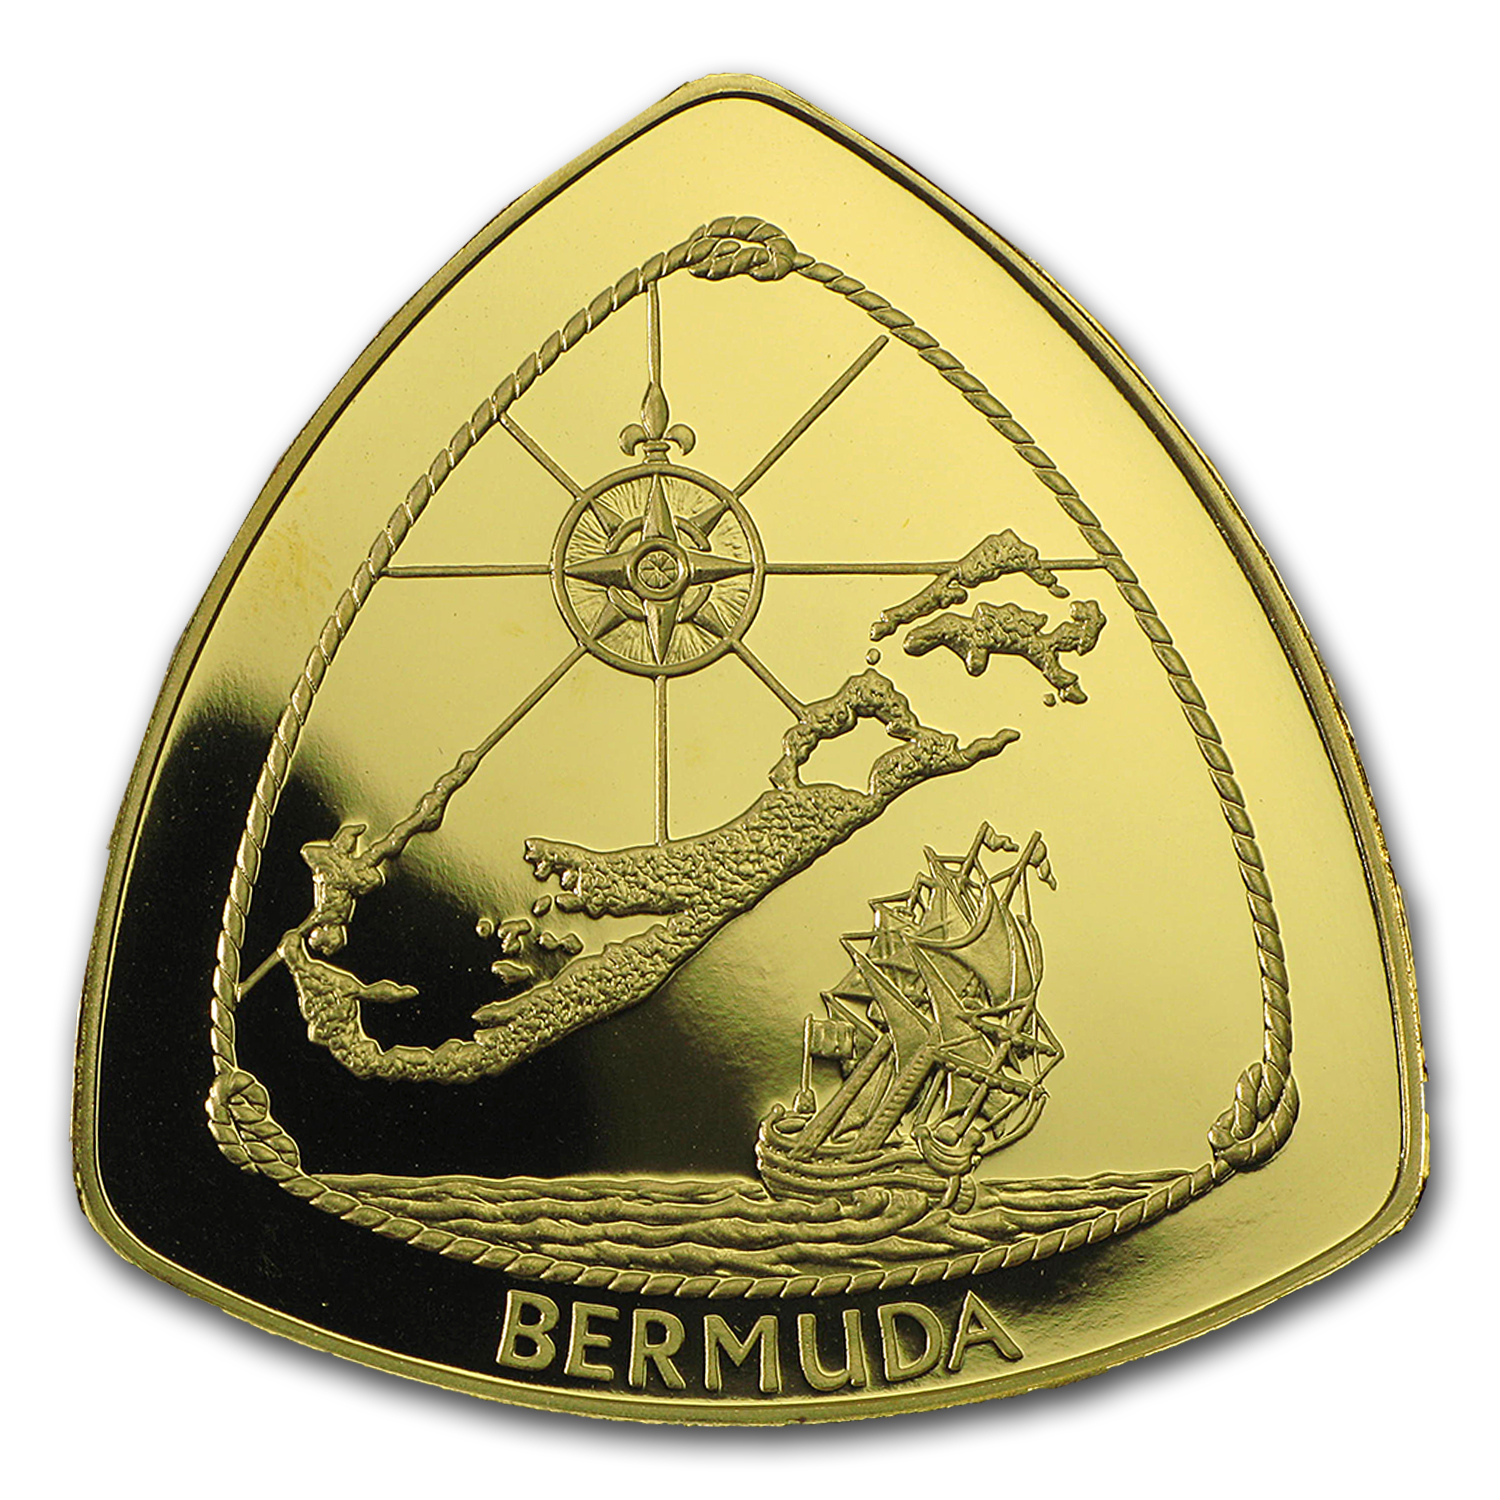 1996 Bermuda 1 oz Proof Gold $60 Triangle